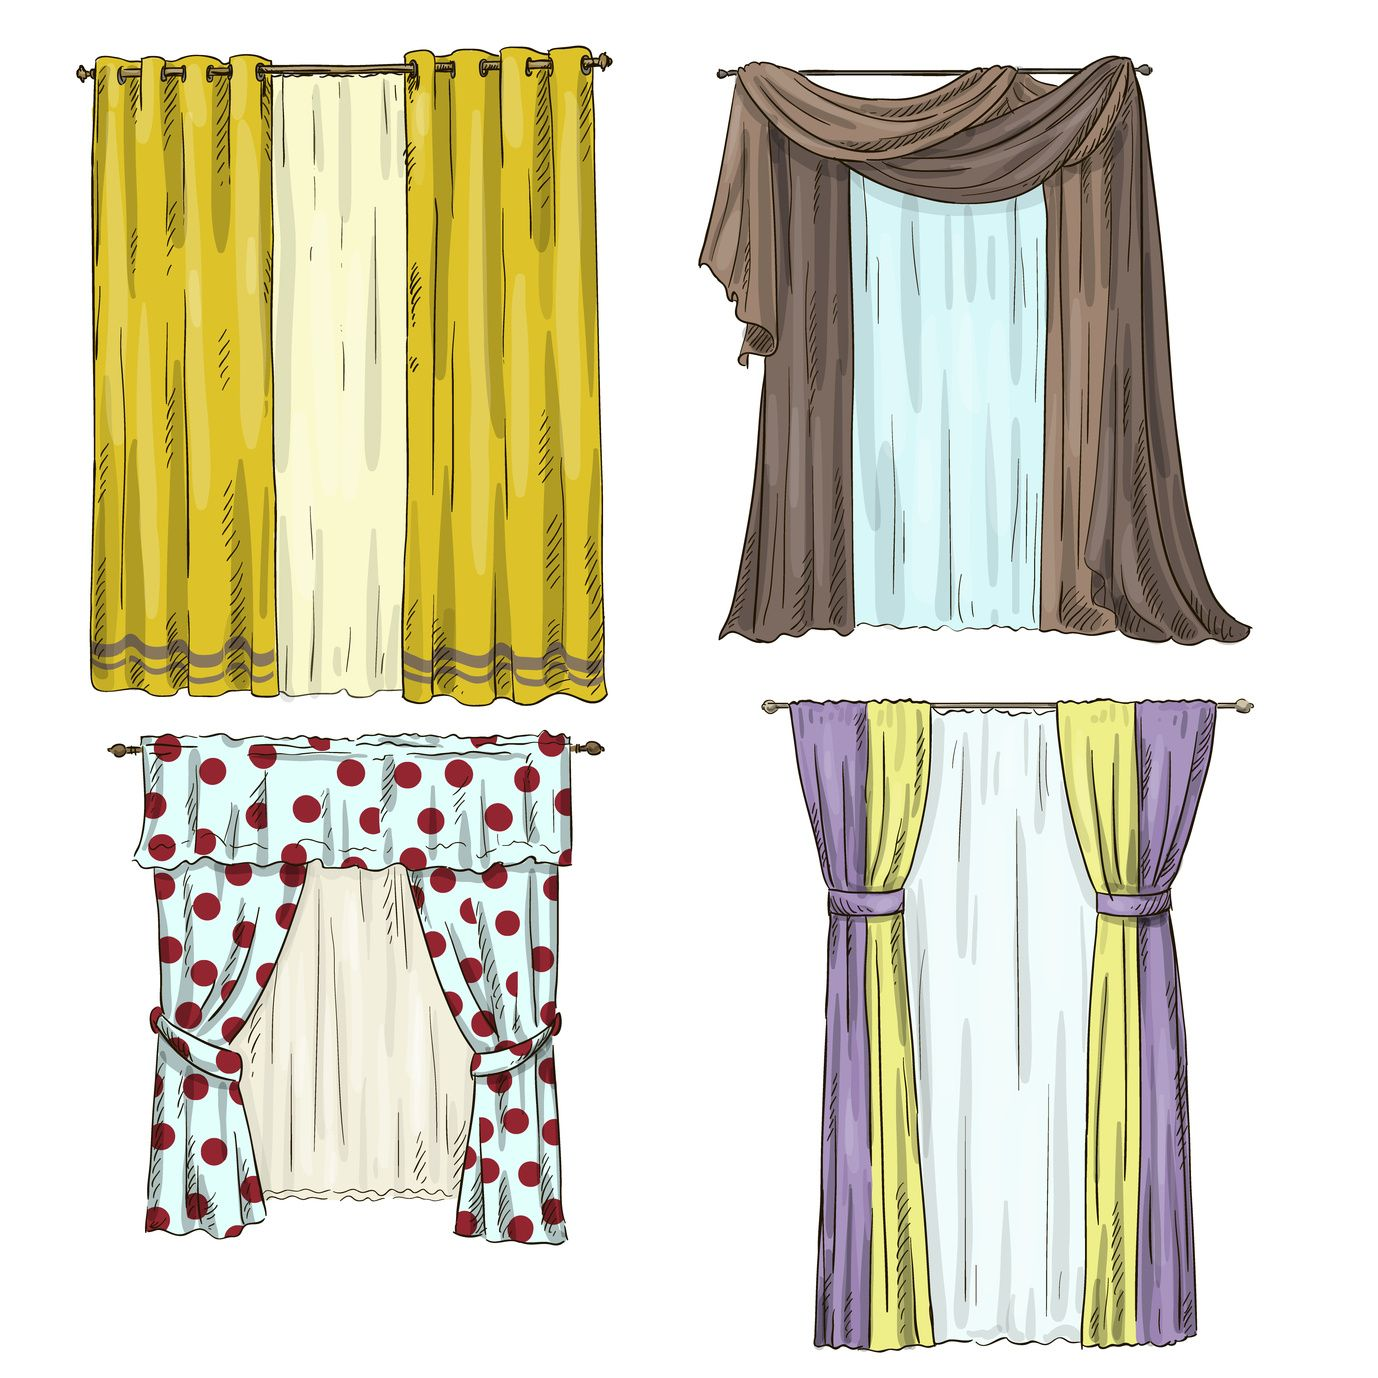 sheer casement curtain sketch - Google Search | DRAPERY ...